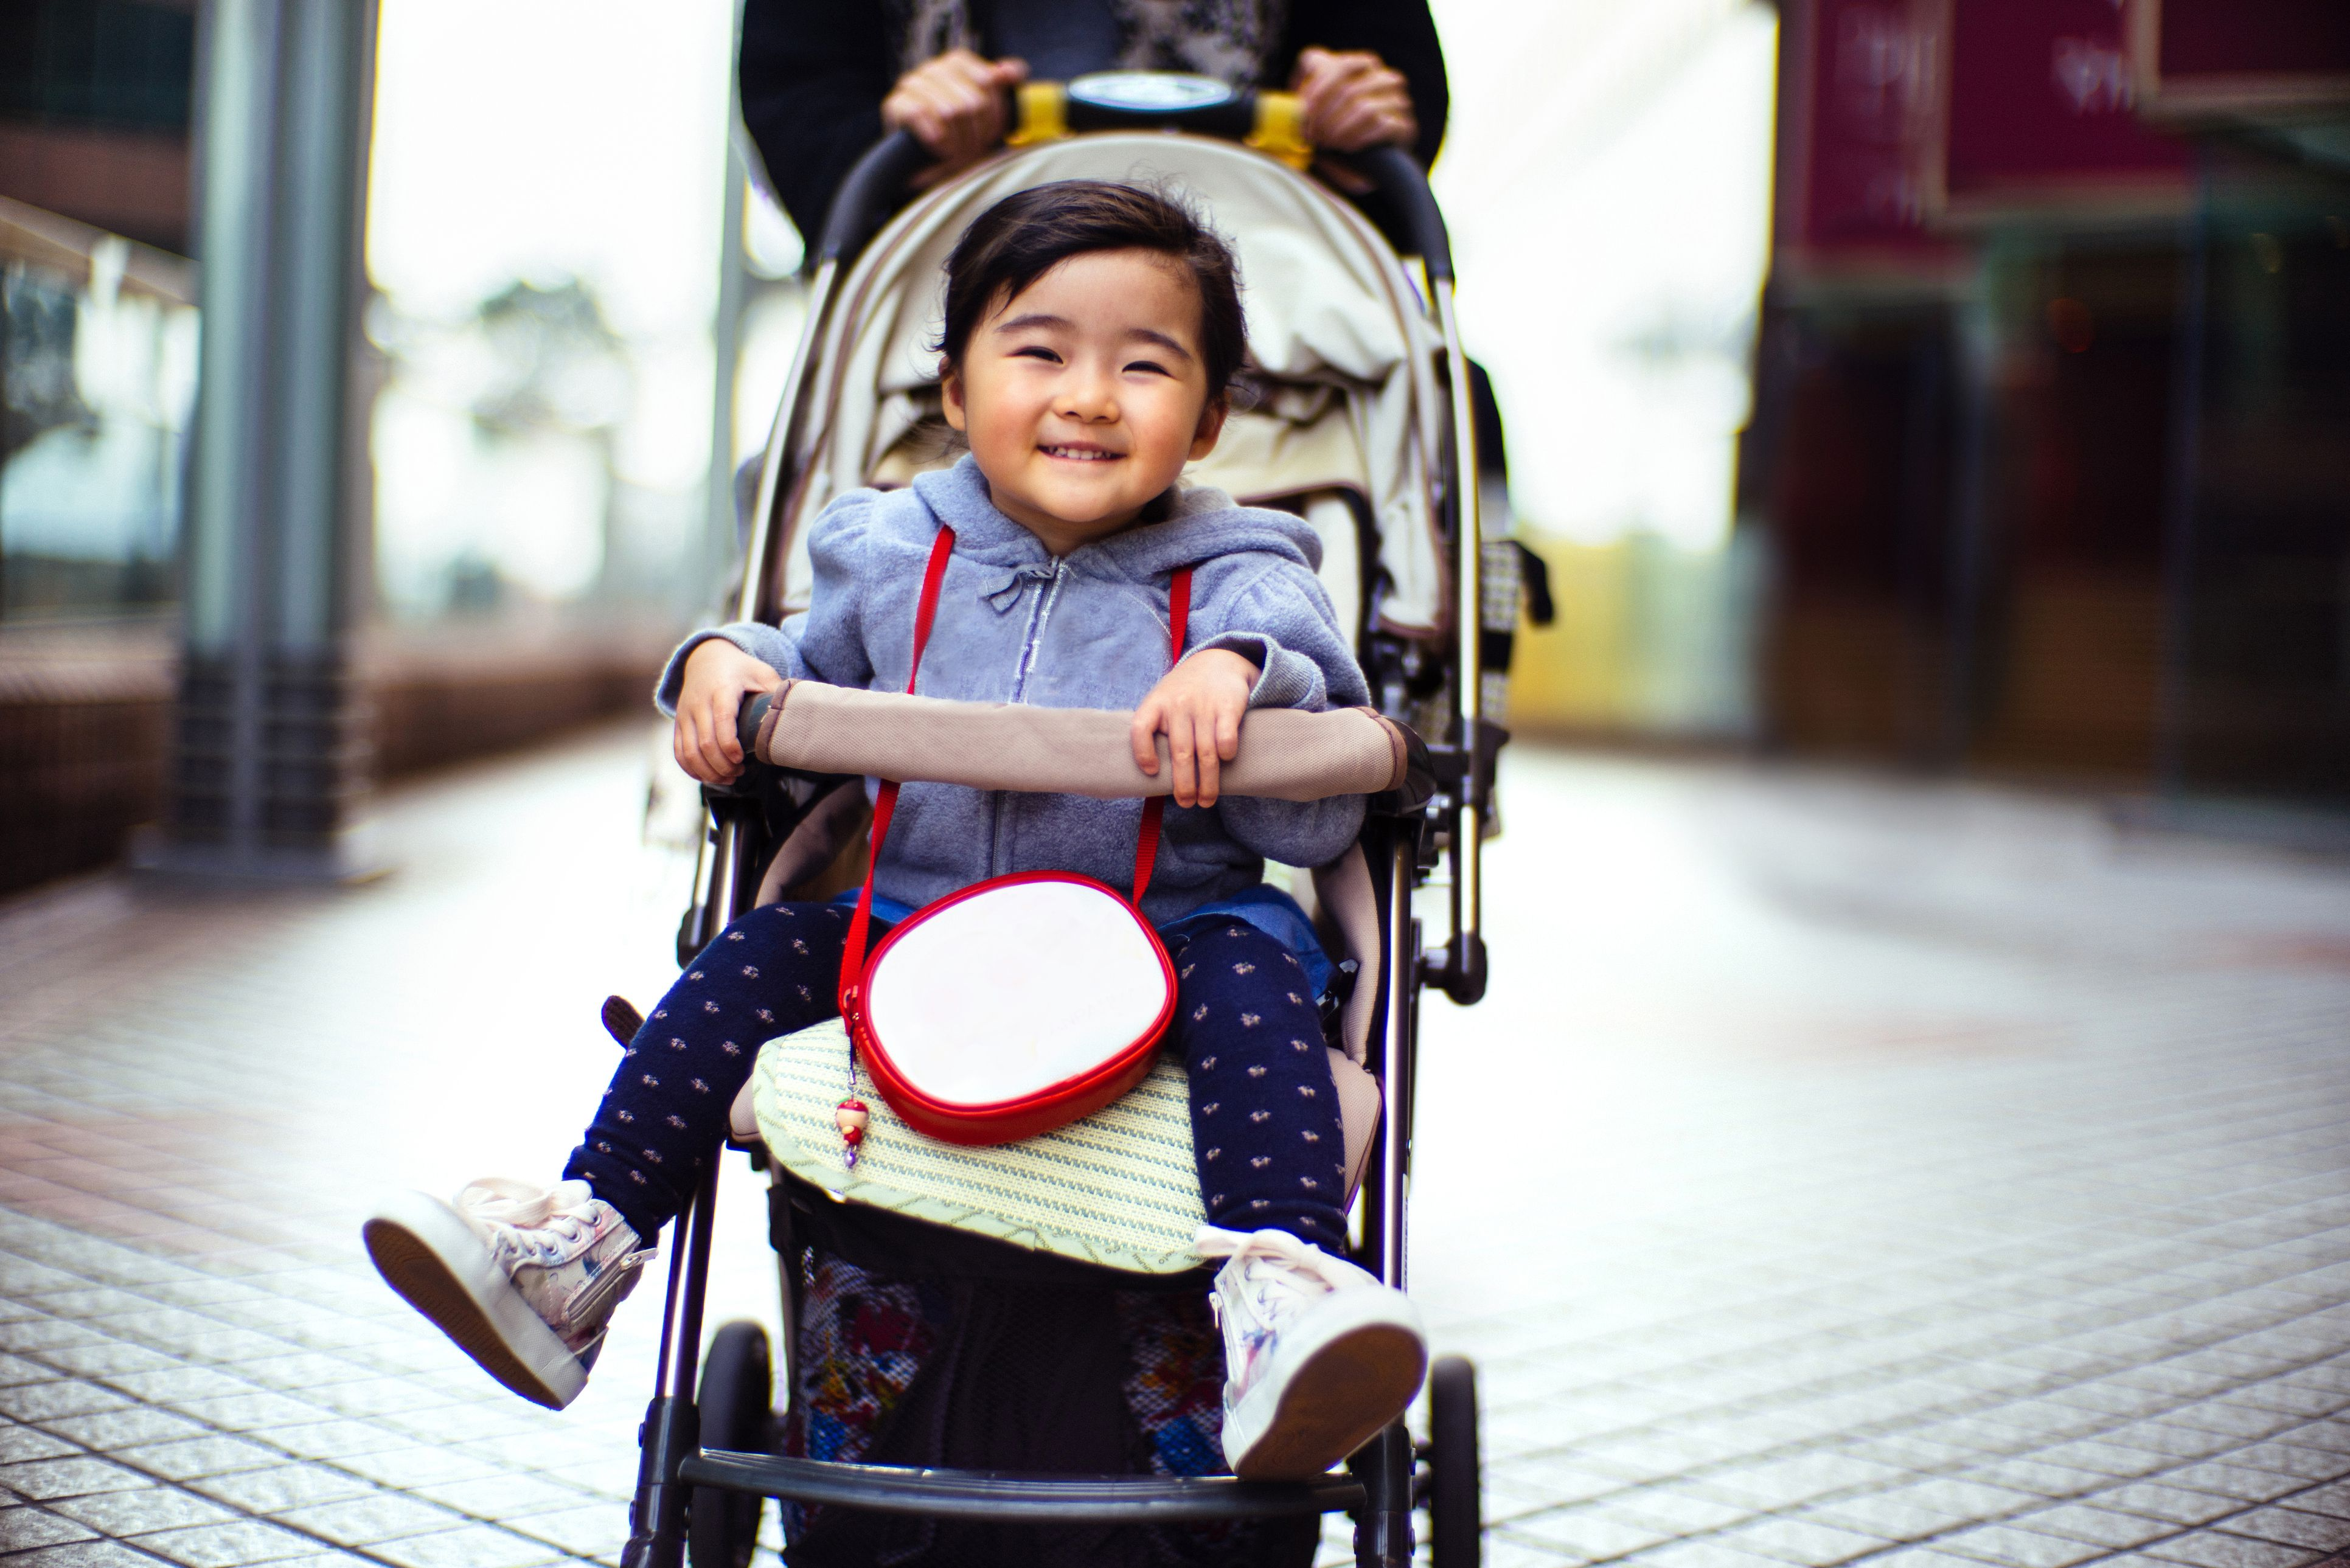 bbbbdf3ae1c9 The 8 Best Baby Strollers of 2019